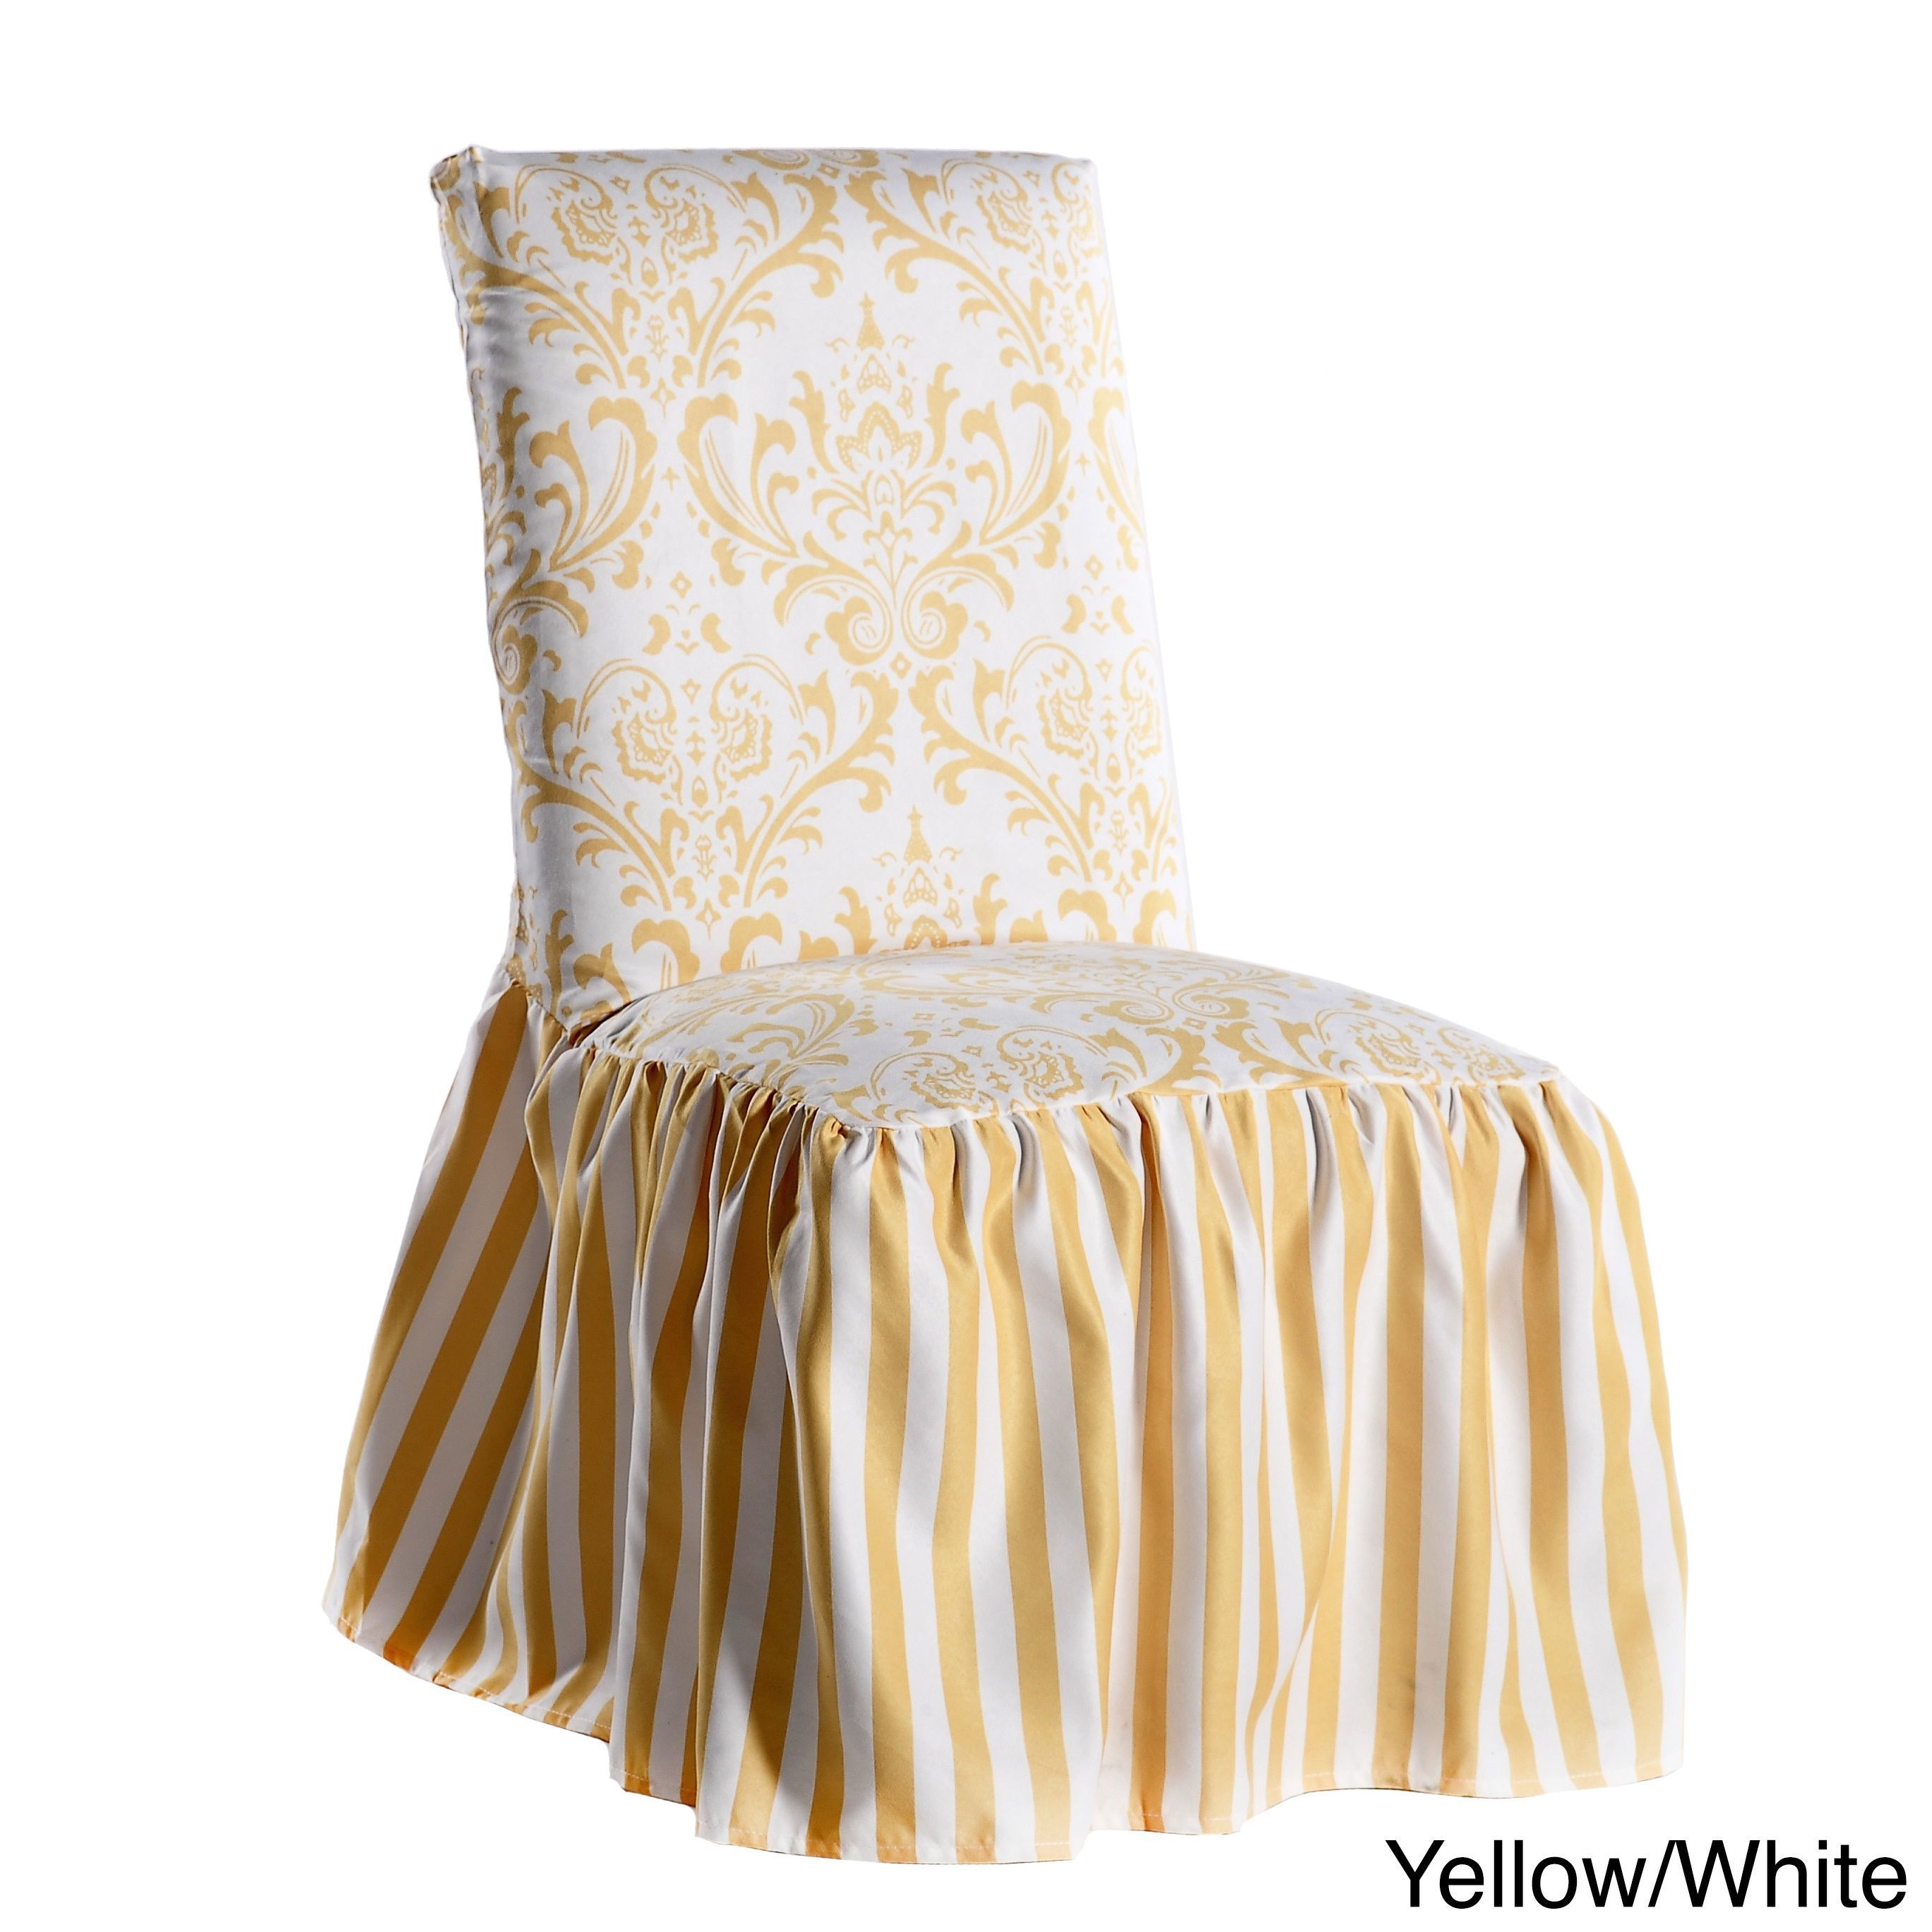 Classic Slipcovers Damask and Stripe Dining Chair Cover (Set of 2) (Yellow/White) (Floral)